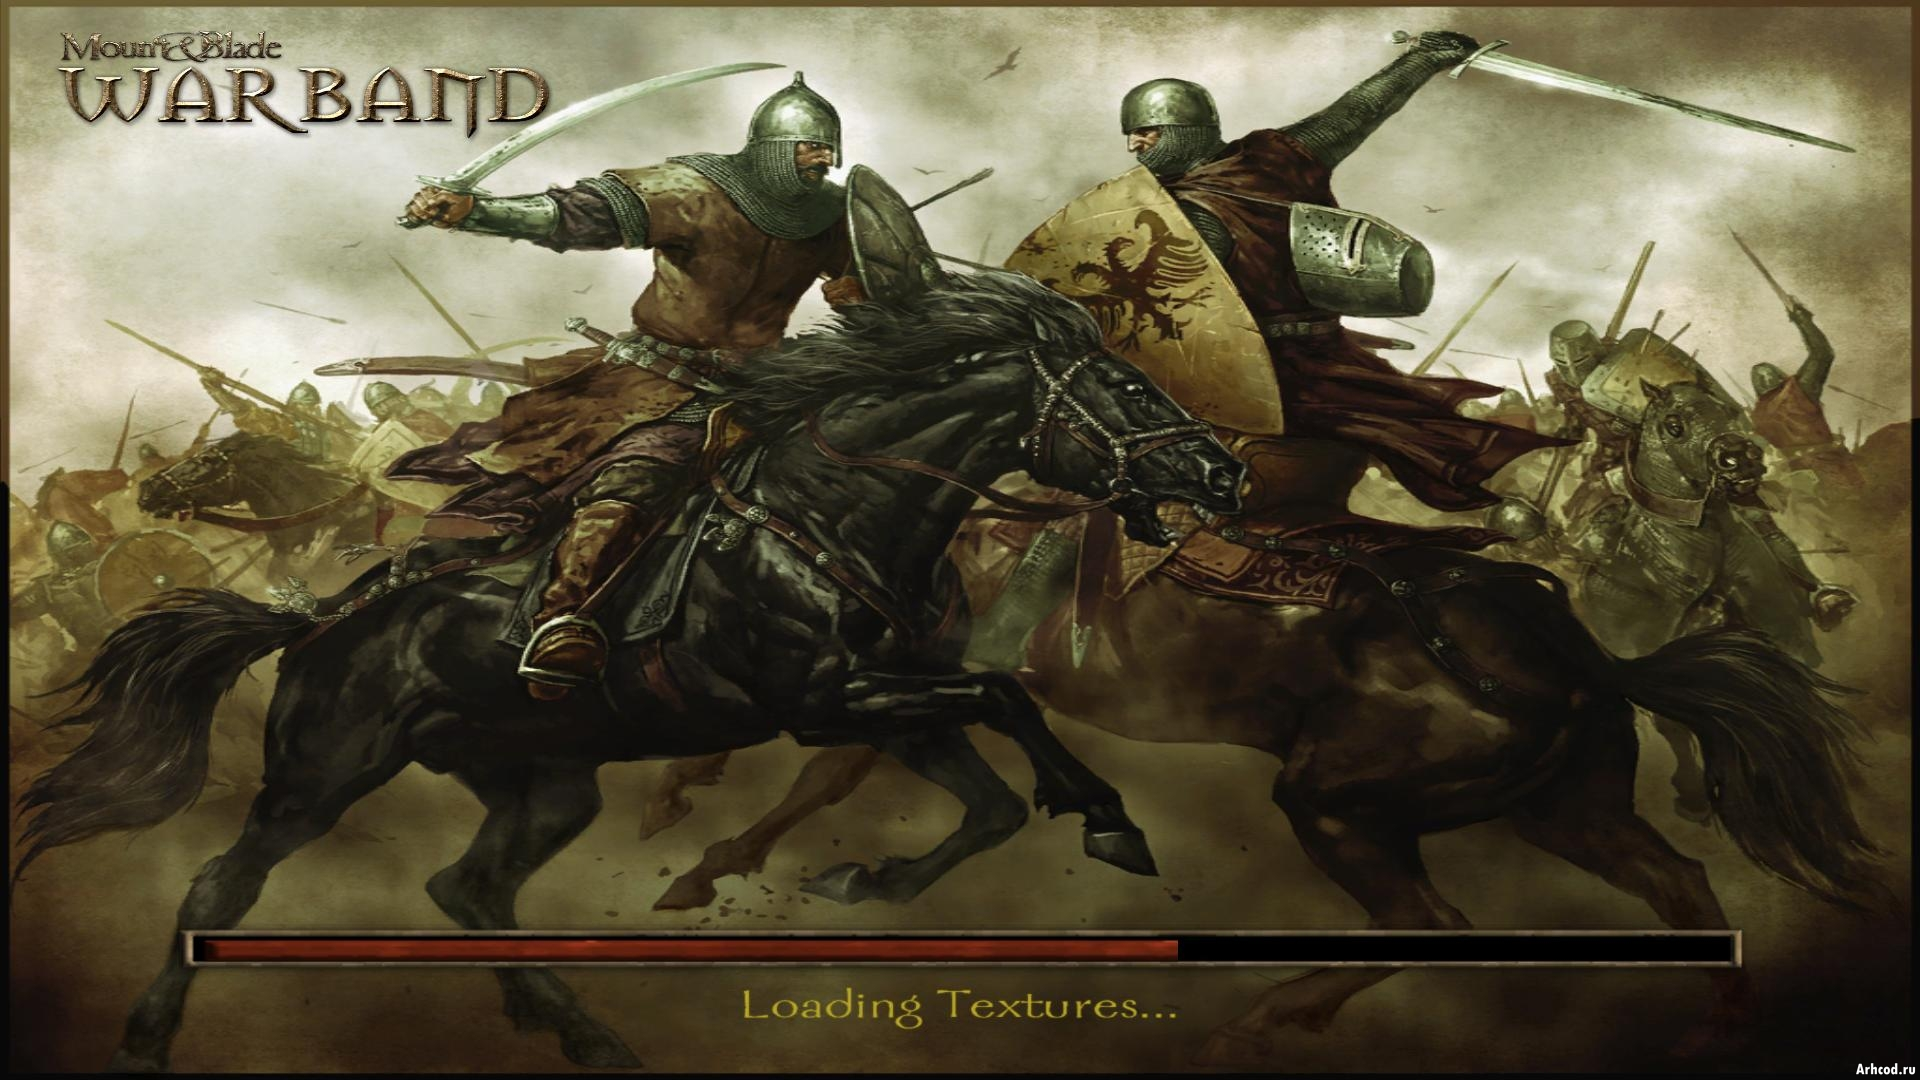 Mount And Blade Warband wallpaper   95025 1920x1080